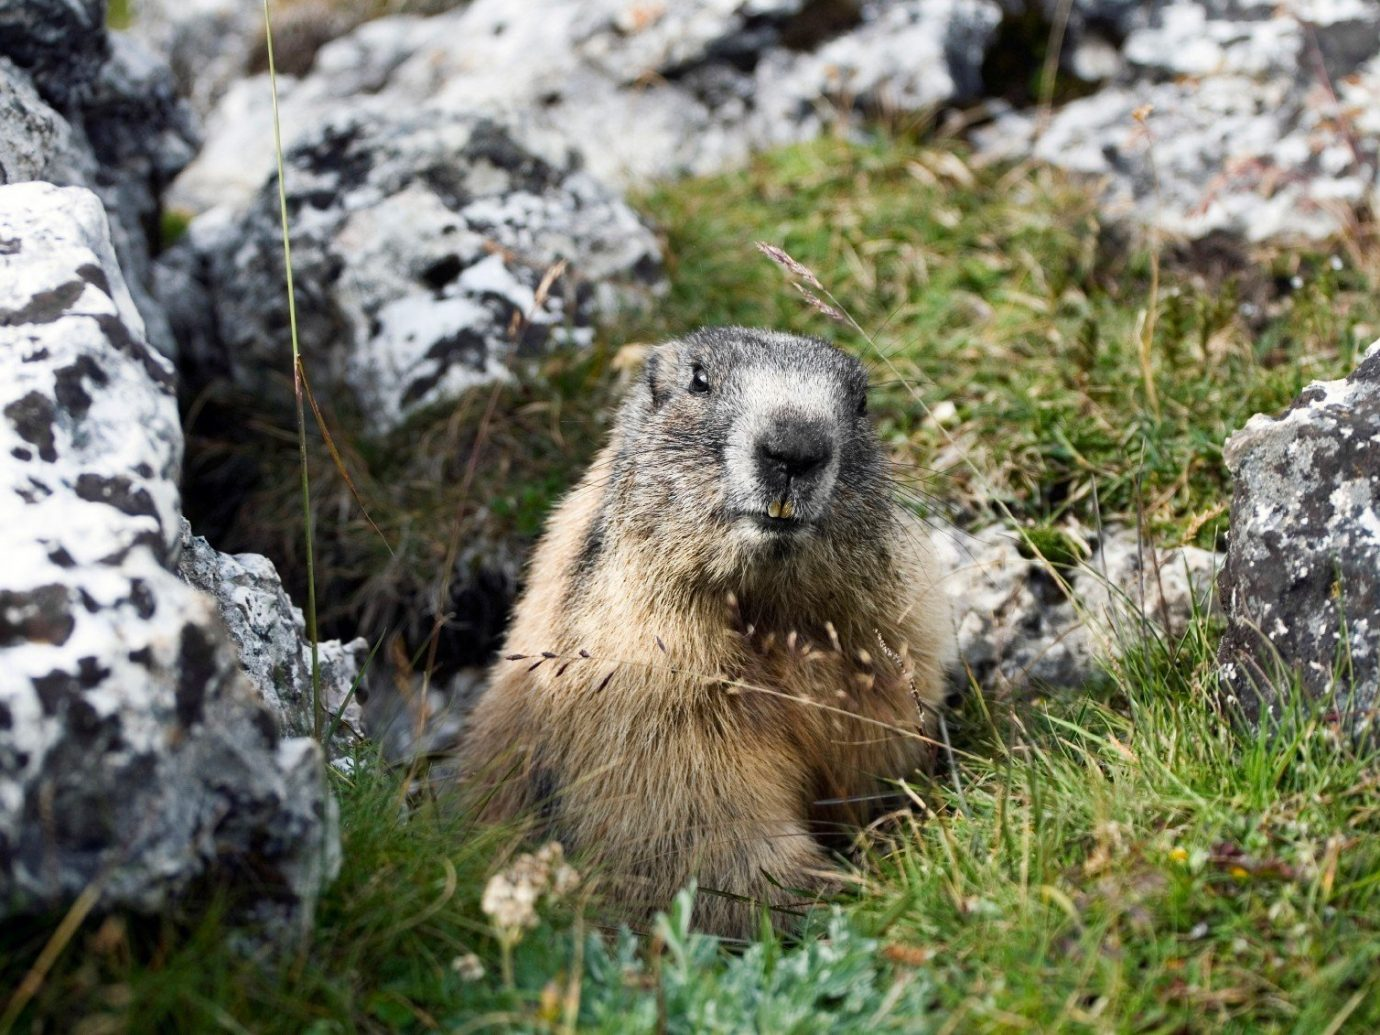 Arts + Culture rock outdoor grass rocky mammal vertebrate Wildlife fauna marmot field prairie dog zoo rodent mustelidae hillside